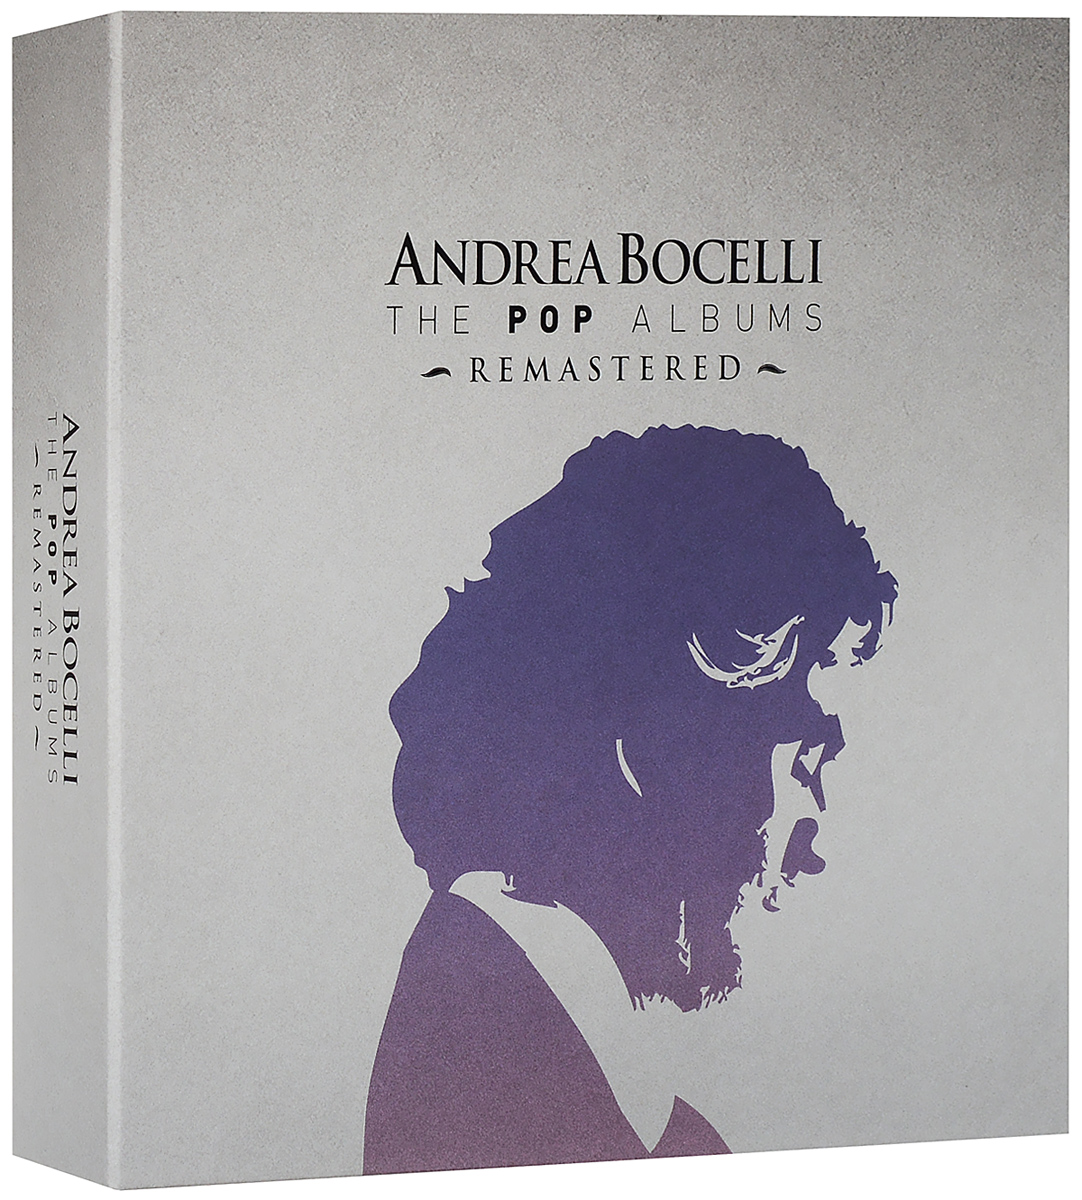 Содержание:       LP 1: Andrea Bocelli. Romanza    LP 1 - Side 1      01. Con Te Partiro   02. Vivere - Feat. Trovato Gerardina   03. Per Amore   04. Il Mare Calmo Della Sera    LP 1 - Side 2      01. Caruso   02. Macchine Da Guerra   03. Le Tue Parole   04. Vivo Per Lei - Feat. Giorgia      LP 2: Andrea Bocelli. Romanza    LP 2 - Side 1      01. Romanza   02. La Luna Che Non C`e   03. Rapsodia    LP 2 - Side 2      01. Vogio Restare Cosi   02. E Chiove   03. Miserere-Live - Feat. John Miles   04. Time To Say Goodbye (Con Te Partiro) - A Tribute To Henri Maske - Feat. Sarah Brightman      LP 3: Andrea Bocelli. Sogno    LP 3 - Side 1      01. Canto Della Terra   02. The Prayer - feat. Celine Dion   03. Sogno   04. `O Mare E Tu - feat. Dulce Pontes    LP 3 - Side 2      01. A Volte Il Cuore   02. Cantico   03. Mai Piu` Cosi` Lontano   04. Immenso      LP 4: Andrea Bocelli. Sogno    LP 4 - Side 1      01. Nel Cuore Lei - feat. Eros Ramazzotti   02. Tremo E T'Amo   03. I Love Rossini    LP 4 - Side 2      01. Un Canto   02. Come Un Fiume Tu   03. A Mio Padre (6 Maggio 1992)       LP 5: Andrea Bocelli. Cieli Di Toscana    LP 5 - Side 1      01. Melodramma   02. Mille Lune Mille Onde   03. E Sara' A Settembre (Someone Like You)    04. Chiara    LP 5 - Side 2      01. Mascagni   02. Resta Qui   03. Il Mistero Dell'Amore   04. Se La Gente Usasse Il Cuore      LP 6: Andrea Bocelli. Cieli Di Toscana     LP 6 - Side 1      01. Si Volto   02. L'Abitudine - Feat. Helena   03. L'Incontro (Introduction Poem Recited By Bono)     LP 6 - Side 2      01. E Mi Manchi Tu   02. Il Diavolo E L'Angelo   03. L'Ultimo Re      LP 7: Andrea Bocelli. Andrea    LP 7 - Side 1      01. Dell' Amore Non Si Sa   02. L'attesa   03. Un Nuovo Giorno (The First Day Of My Life)    04. Tu Ci Sei    LP 7 - Side 2      01. Sin Tu Amor - Feat.  Mario Reyes   02. Liberta   03. Per Noi   04. Le Parole Che Non Ti Ho Detto     LP 8: Andrea Bocelli. Andrea    LP 8 - Side 1      01. Sempre O Mai   02. In Canto   03. Quante Volte Ti Ho Cercato    LP 8 - Side 2      01. When A Child Is Born   02. Go Where Love Goes - Feat. Holly Stell   03. Semplicemente (Canto Per Te)      LP 9: Andrea Bocelli. Amore    LP 9 - Side 1      01. Amapola   02. Besame Mucho   03. Les Feuilles Mortes (Autumn Leaves) - Feat. Veronica Berti   04. Mi Manchi - Feat. Kenny G    LP 9 - Side 2      01. Somos Novios (It's Impossible) - Feat. Christina Aguilera    02. Canzoni Stonate - Feat. Stevie Wonder   03. Solamente Una Vez      LP 10: Andrea Bocelli. Amore    LP 10 - Side 1      01. Jurame - Feat. Mario Reyes   02. Pero Te Extrano   03. Momentos   04. Appuntamento (Sentado A' Beira Do Caminho)     LP 10 - Side 2      01. Cuando Me Enamoro (Quando M'Innamoro)    02. Estate - Feat. Chris Botti   03. Can't Help Falling In Love (Live At The Las Vegas)    04. Because We Believe      LP 11: Andrea Bocelli. My Christmas    LP 11 - Side 1      01. White Christmas / Bianco Natale   02. Angels We Have Heard On High   03. Santa Claus Is Coming To Town   04. The Christmas Song - With Natalie Cole    LP 11 - Side 2      01. The Lords Prayer - With The Mormon Tabernacle Choir   02. What Child Is This - With Mary J Blige   03. Adeste Fidelis      LP 12: Andrea Bocelli. My Christmas    LP 12 - Side 1      01. O Tannenbaum   02. Jingle Bells - Feat.